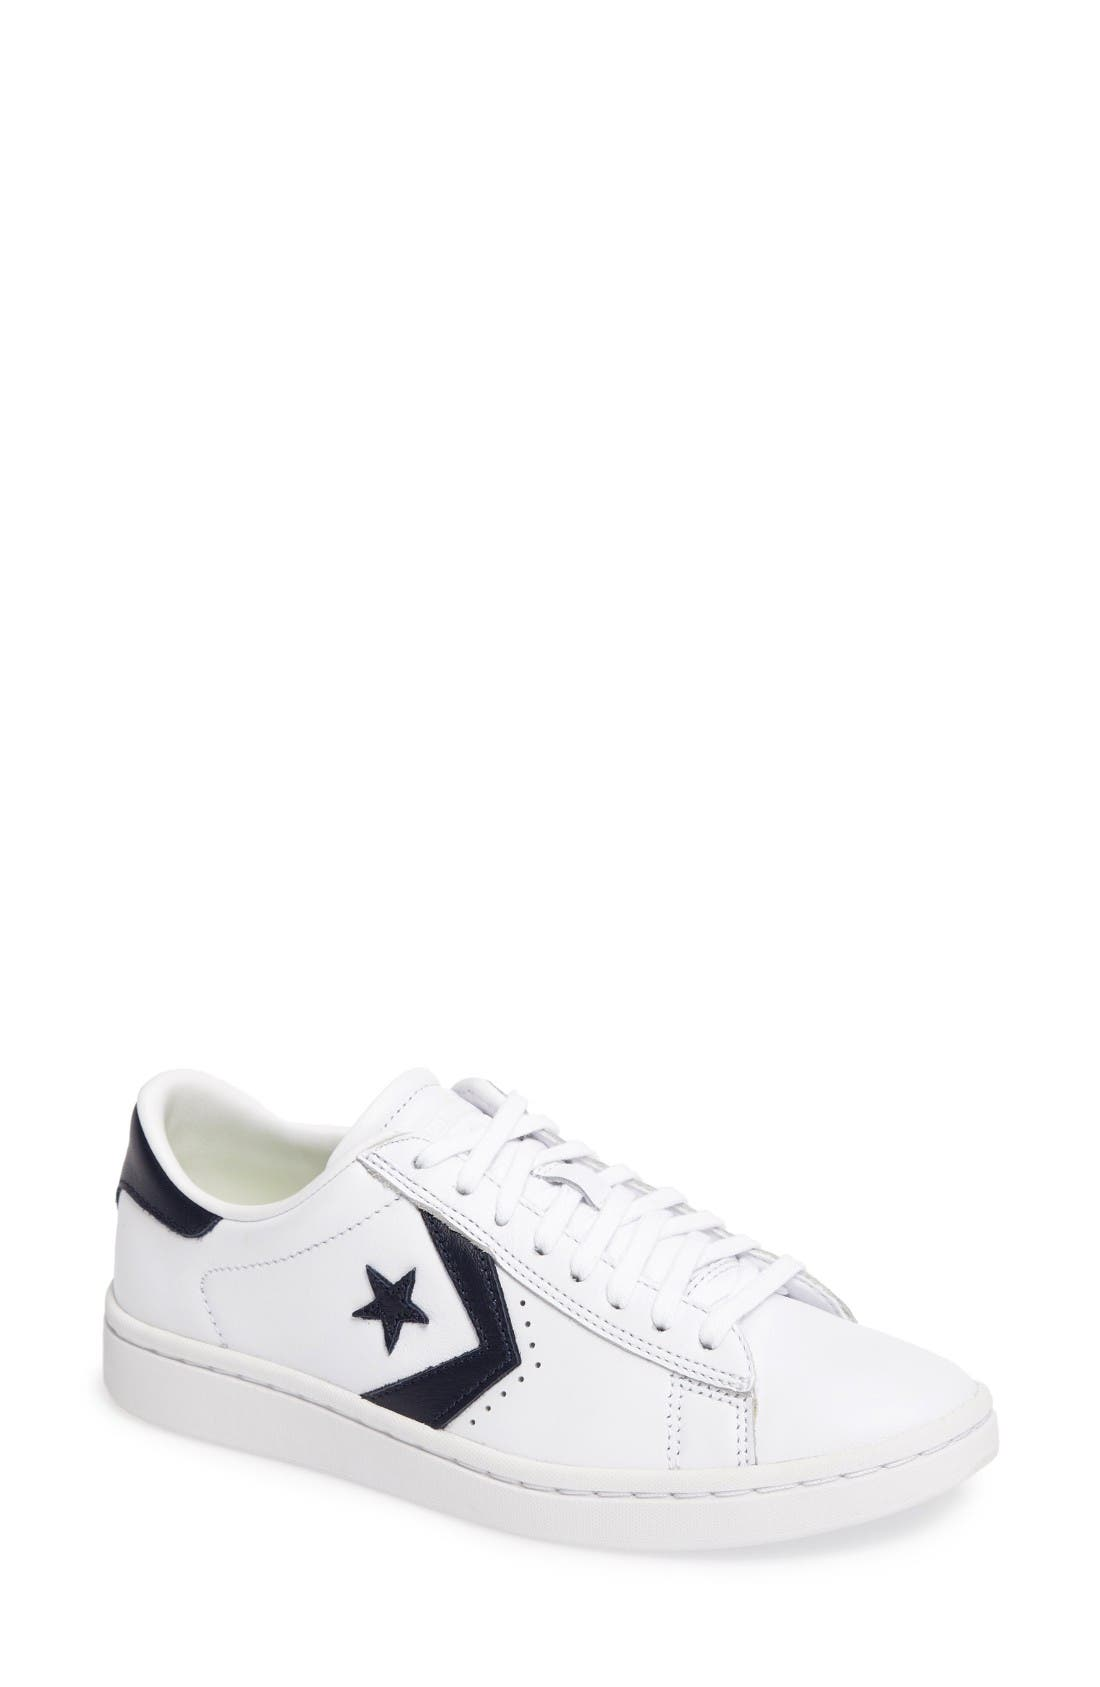 Converse Pro Leather LP Sneaker (Women)